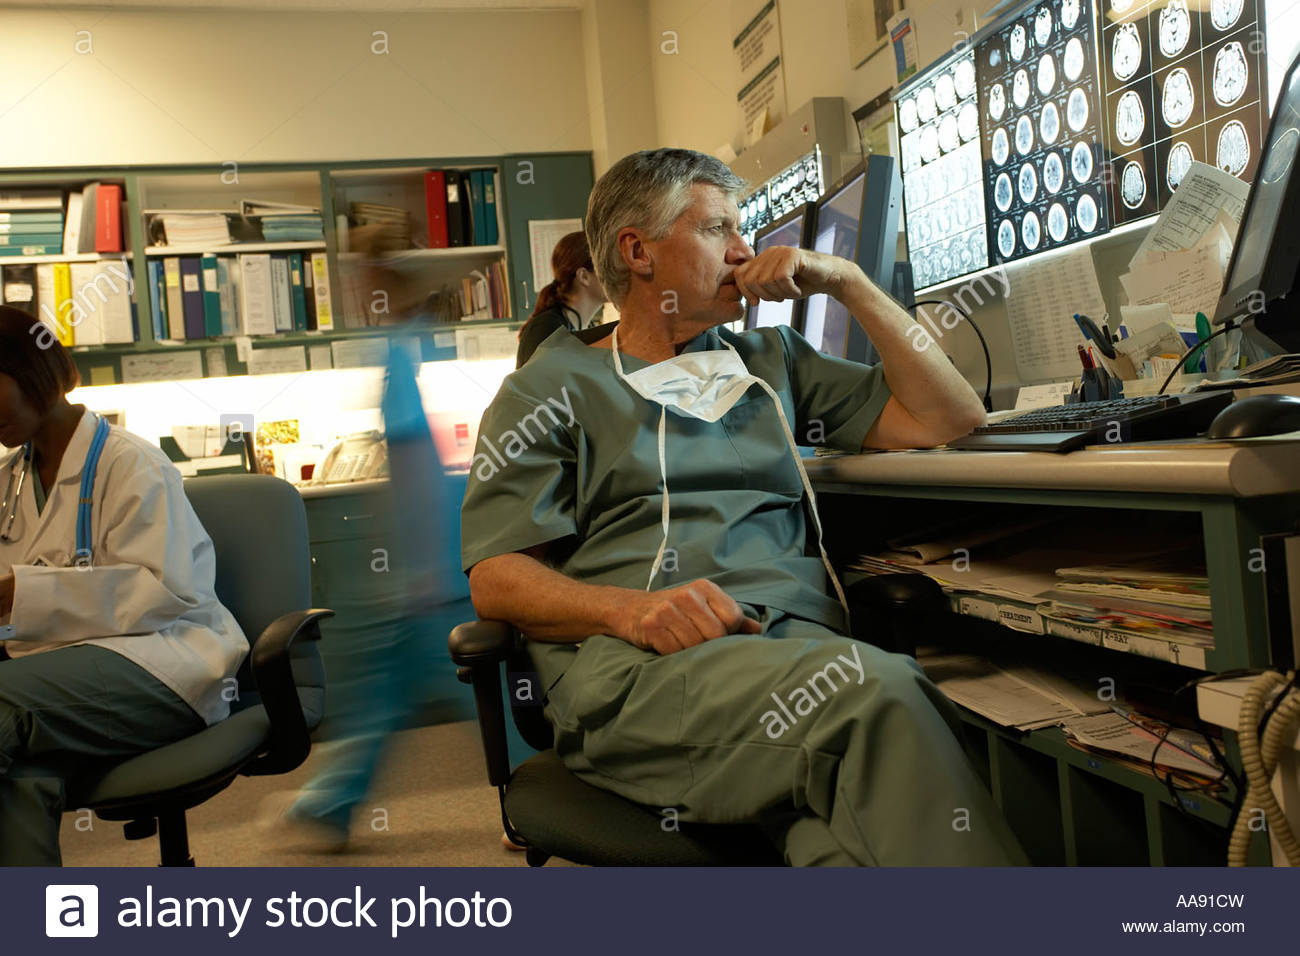 Male doctor looking at x-rays - Stock Image